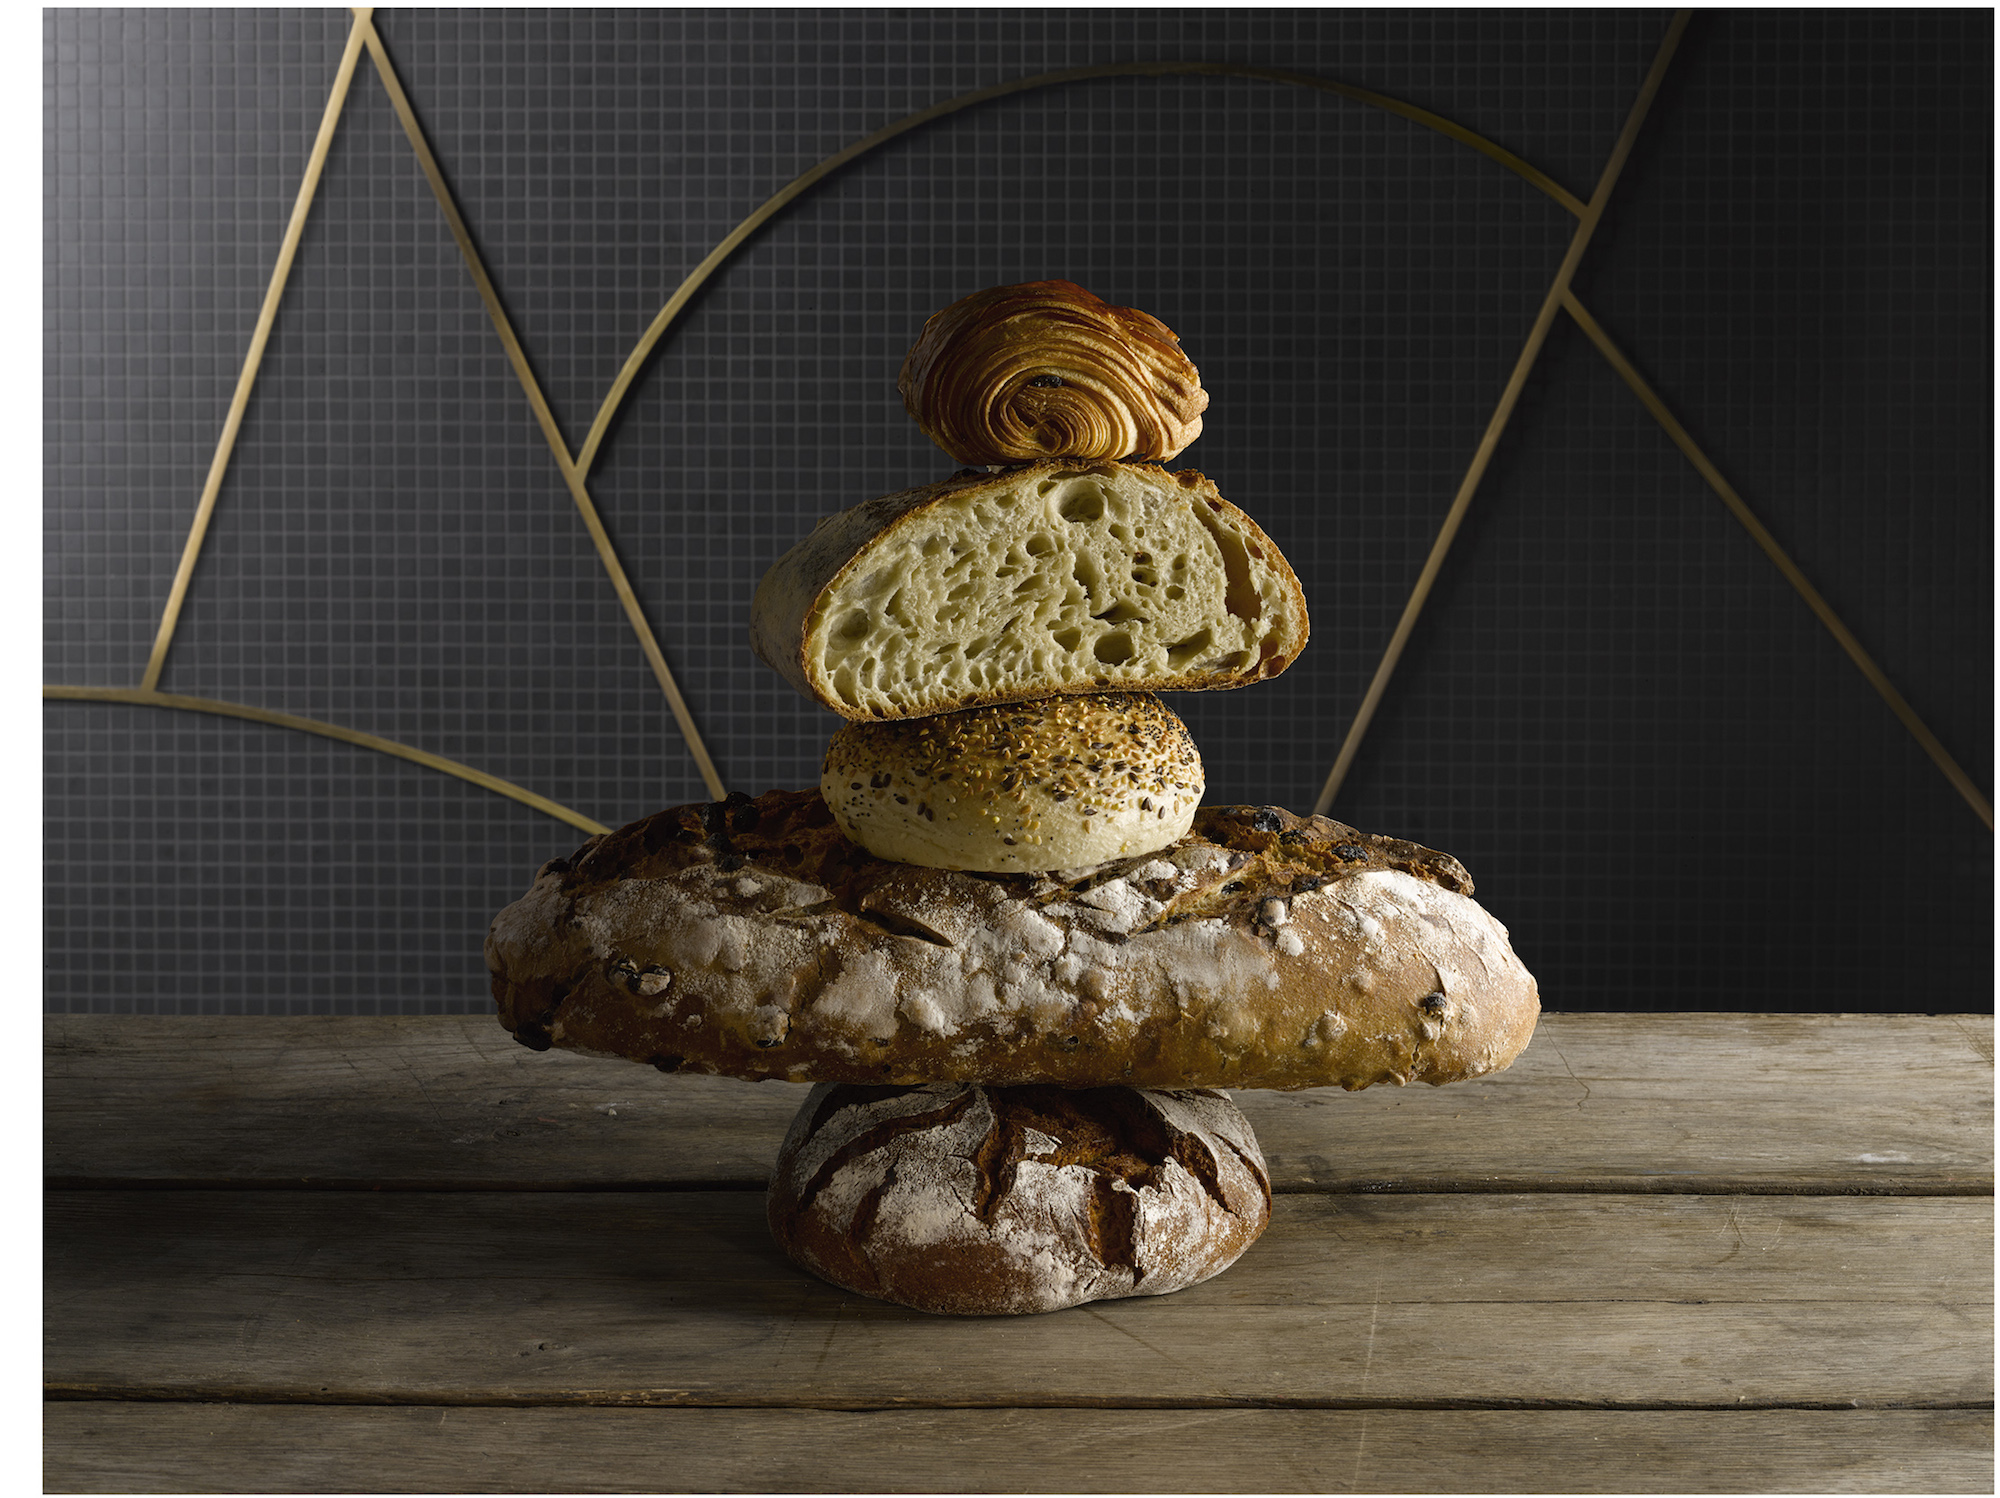 Foodie destination, Printemps du Gout in Paris sells lots of different types of artisanal bread.